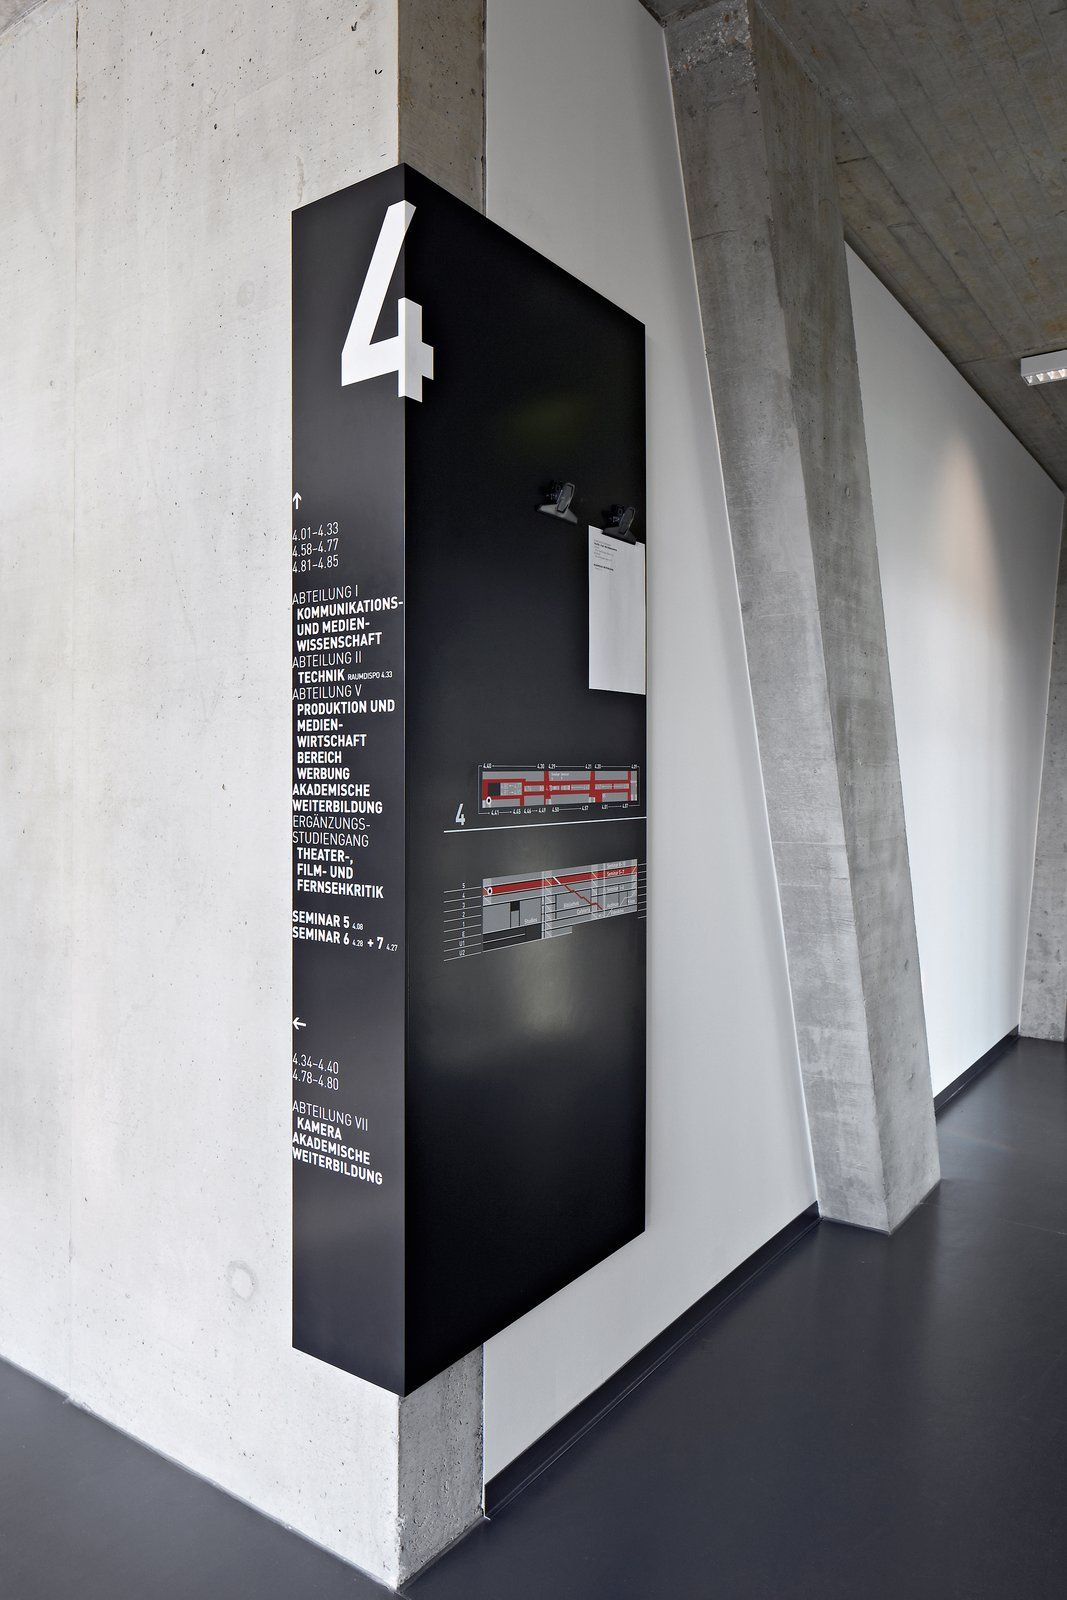 University of Television and Film Munich: More detailed information is contained on distinctively designed black signs that wrap around corners almost like shadows, so that they can be easily seen from the floors and the central staircase.  Way-Finding Systems